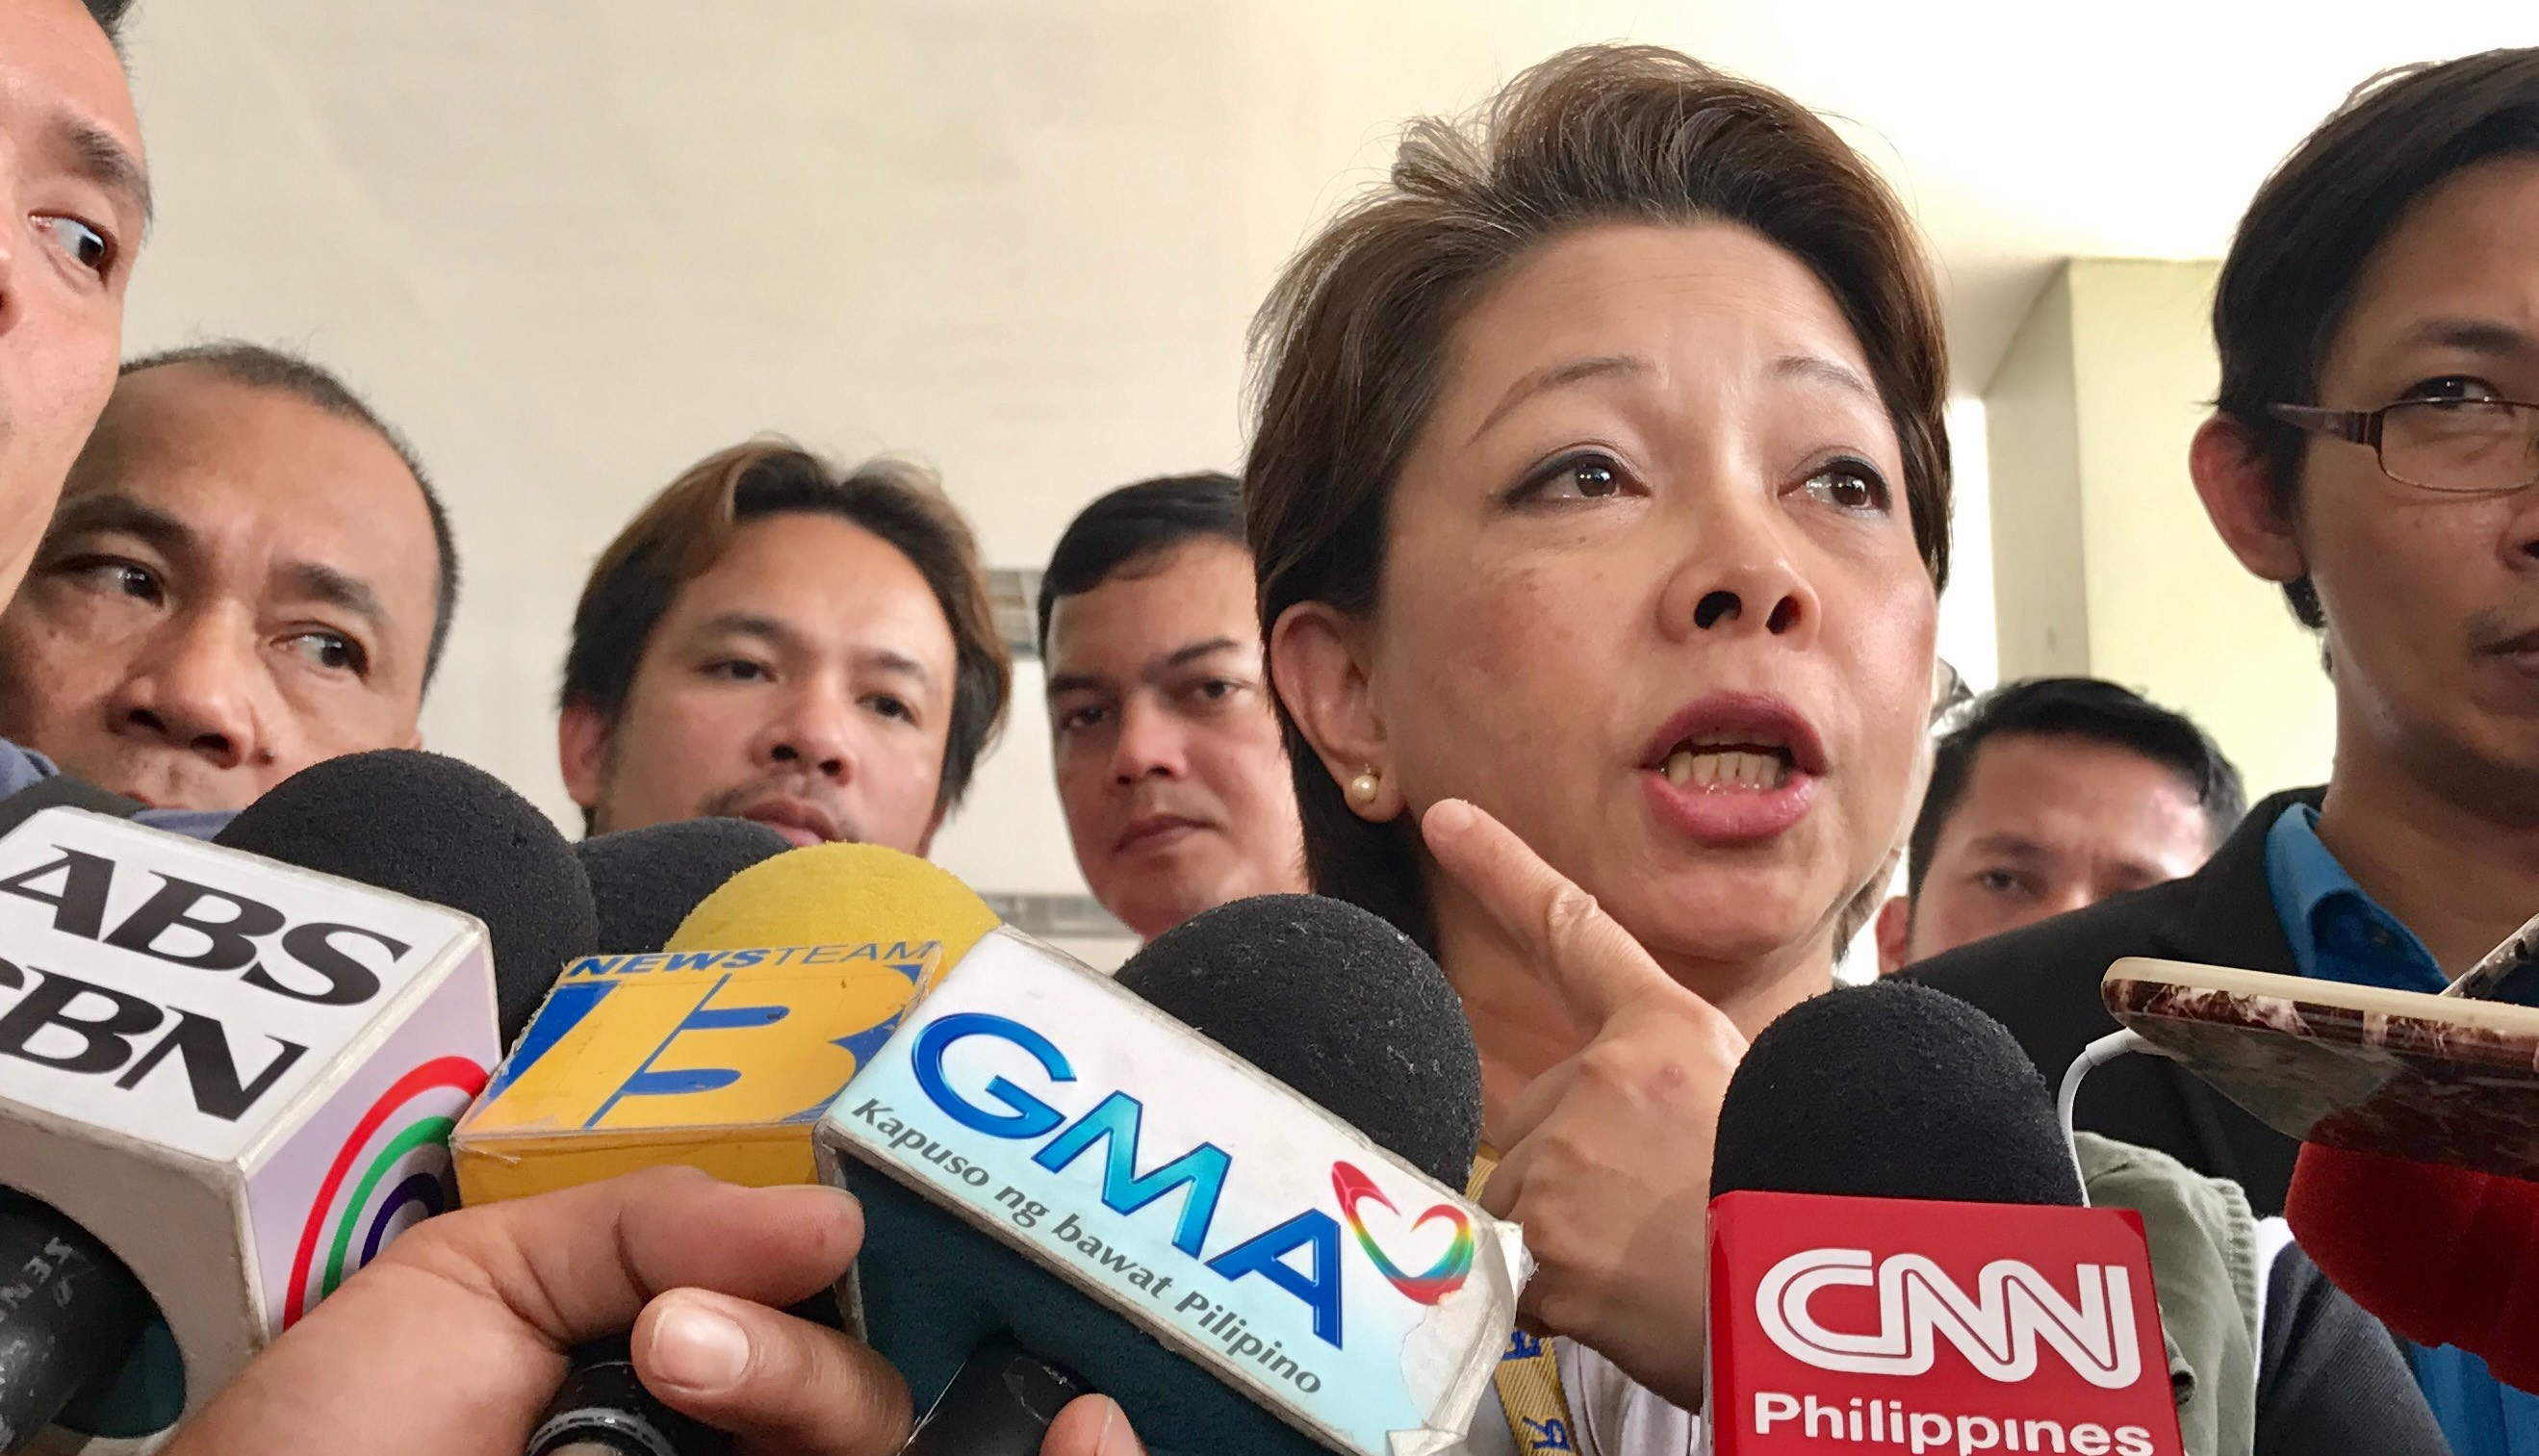 BAN PUSHES THROUGH. LTFRB board member Aileen Lizada says they are bound by their order. Photo by Rambo Talabong/Rappler